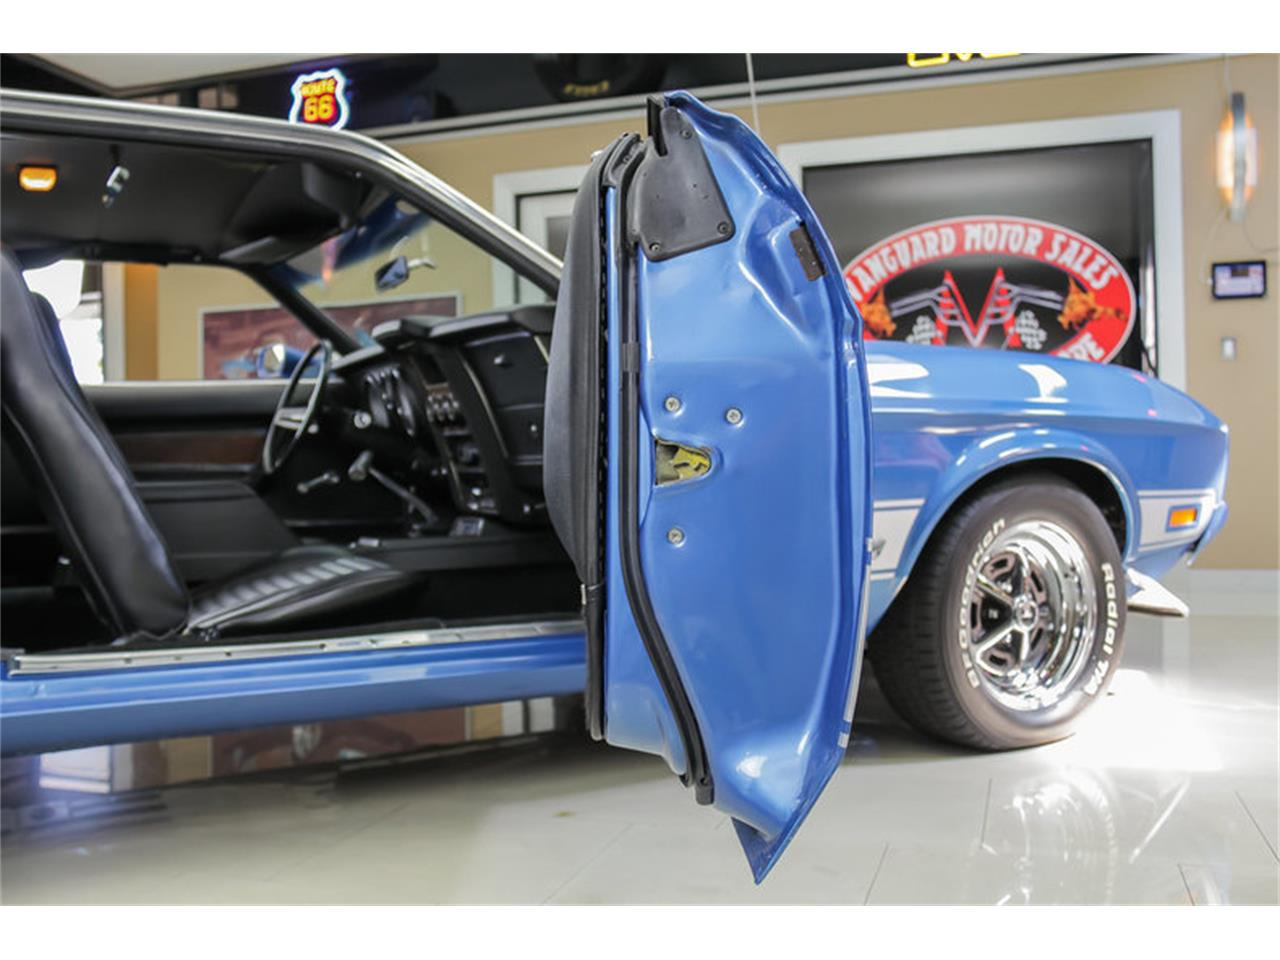 Large Picture of 1973 Mustang Mach 1 Q Code located in Michigan - $34,900.00 - JDX1